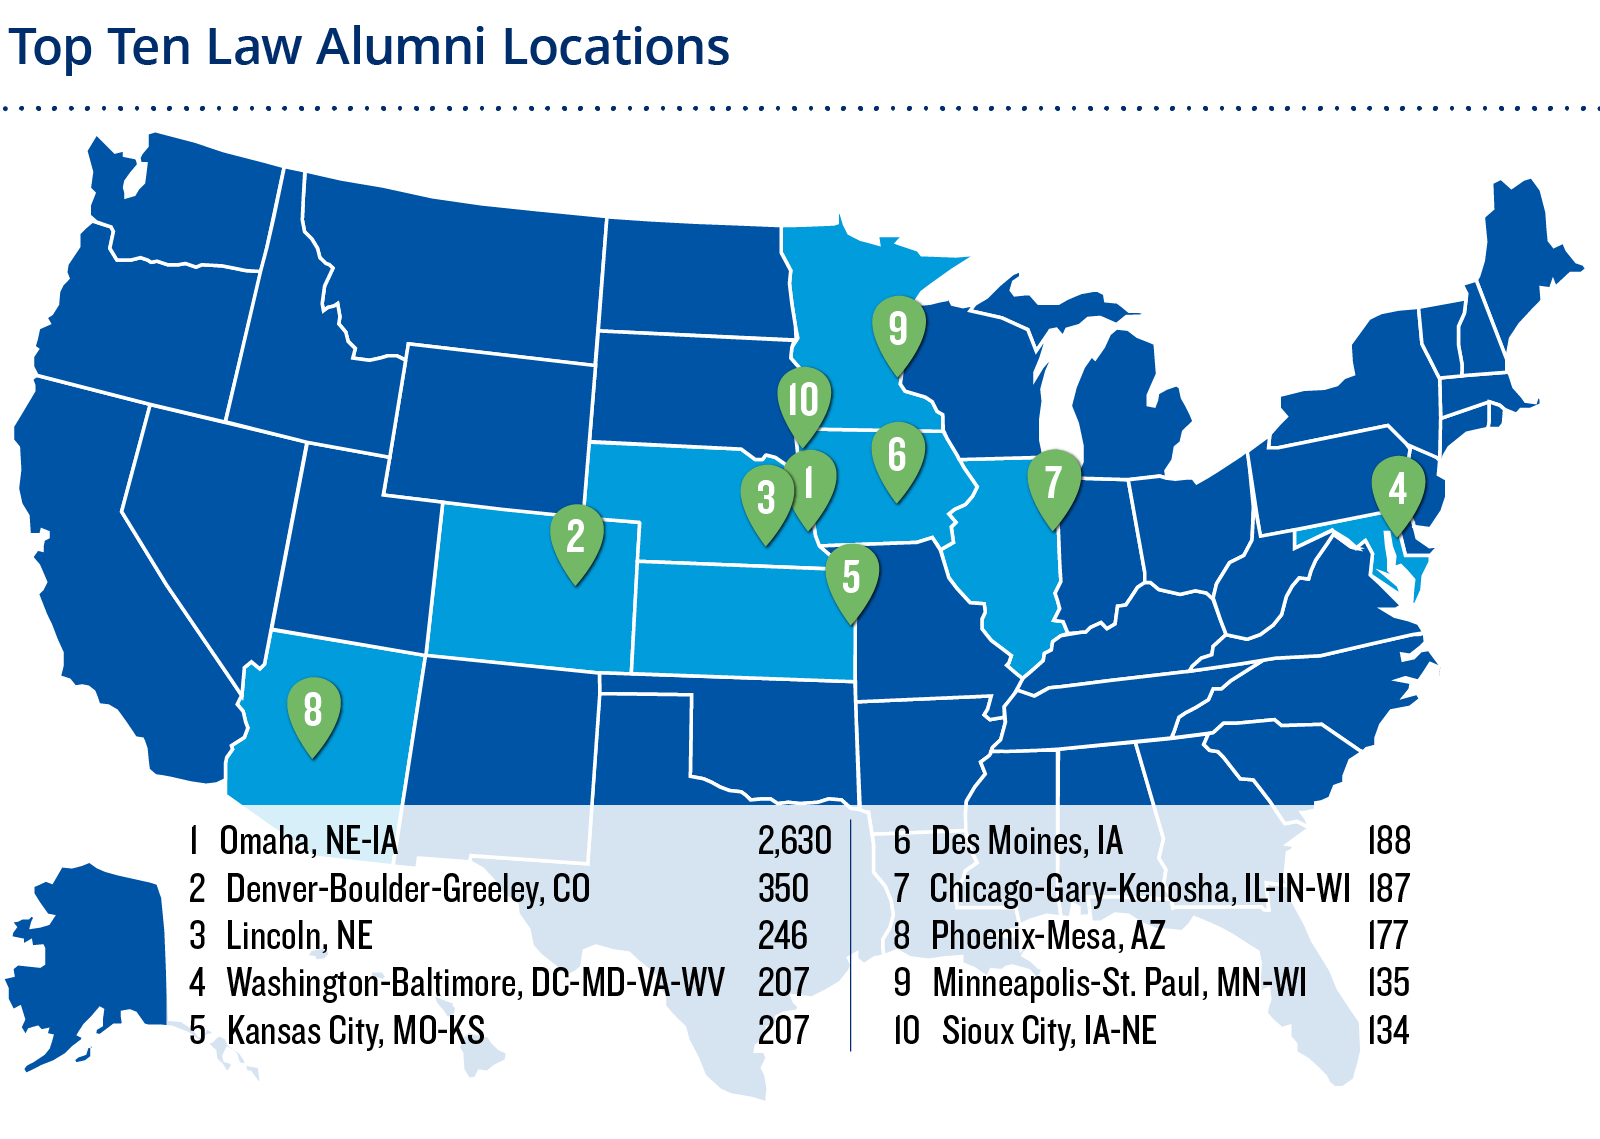 Graphic Of Top 10 Alumni Locations In The United States